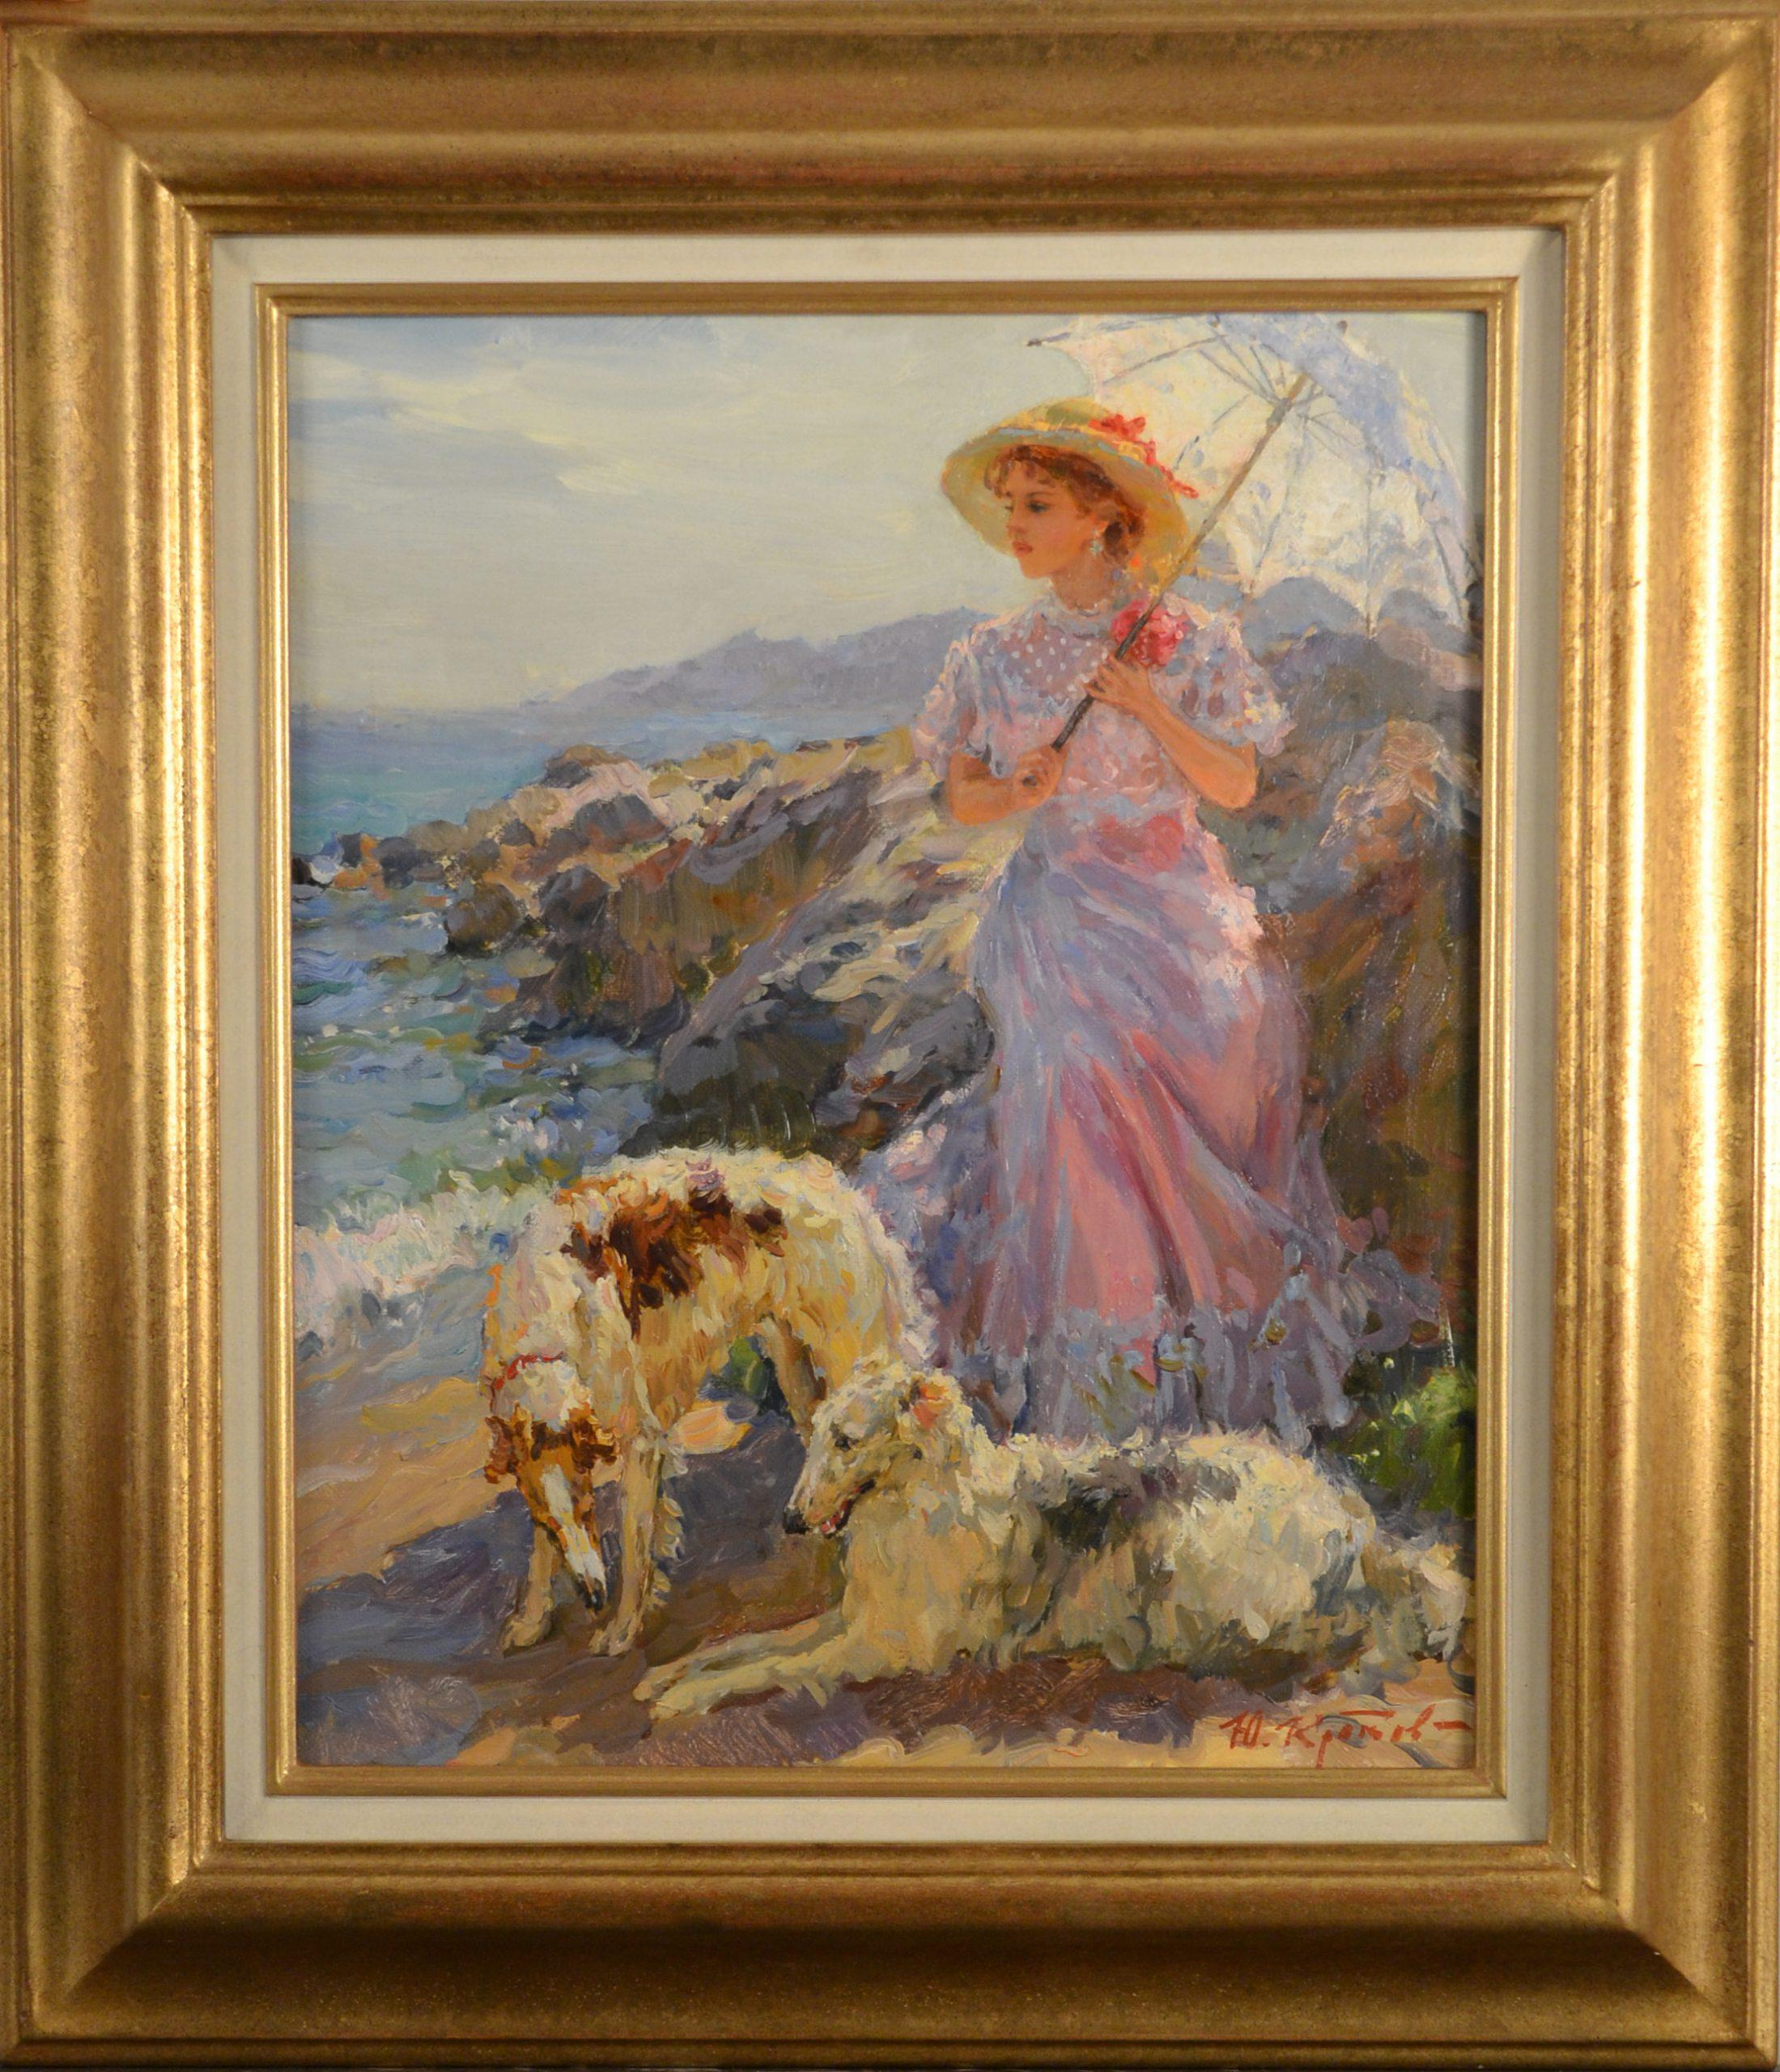 An Elegant Lady with Borzoi dogs in a Coastal Landscape